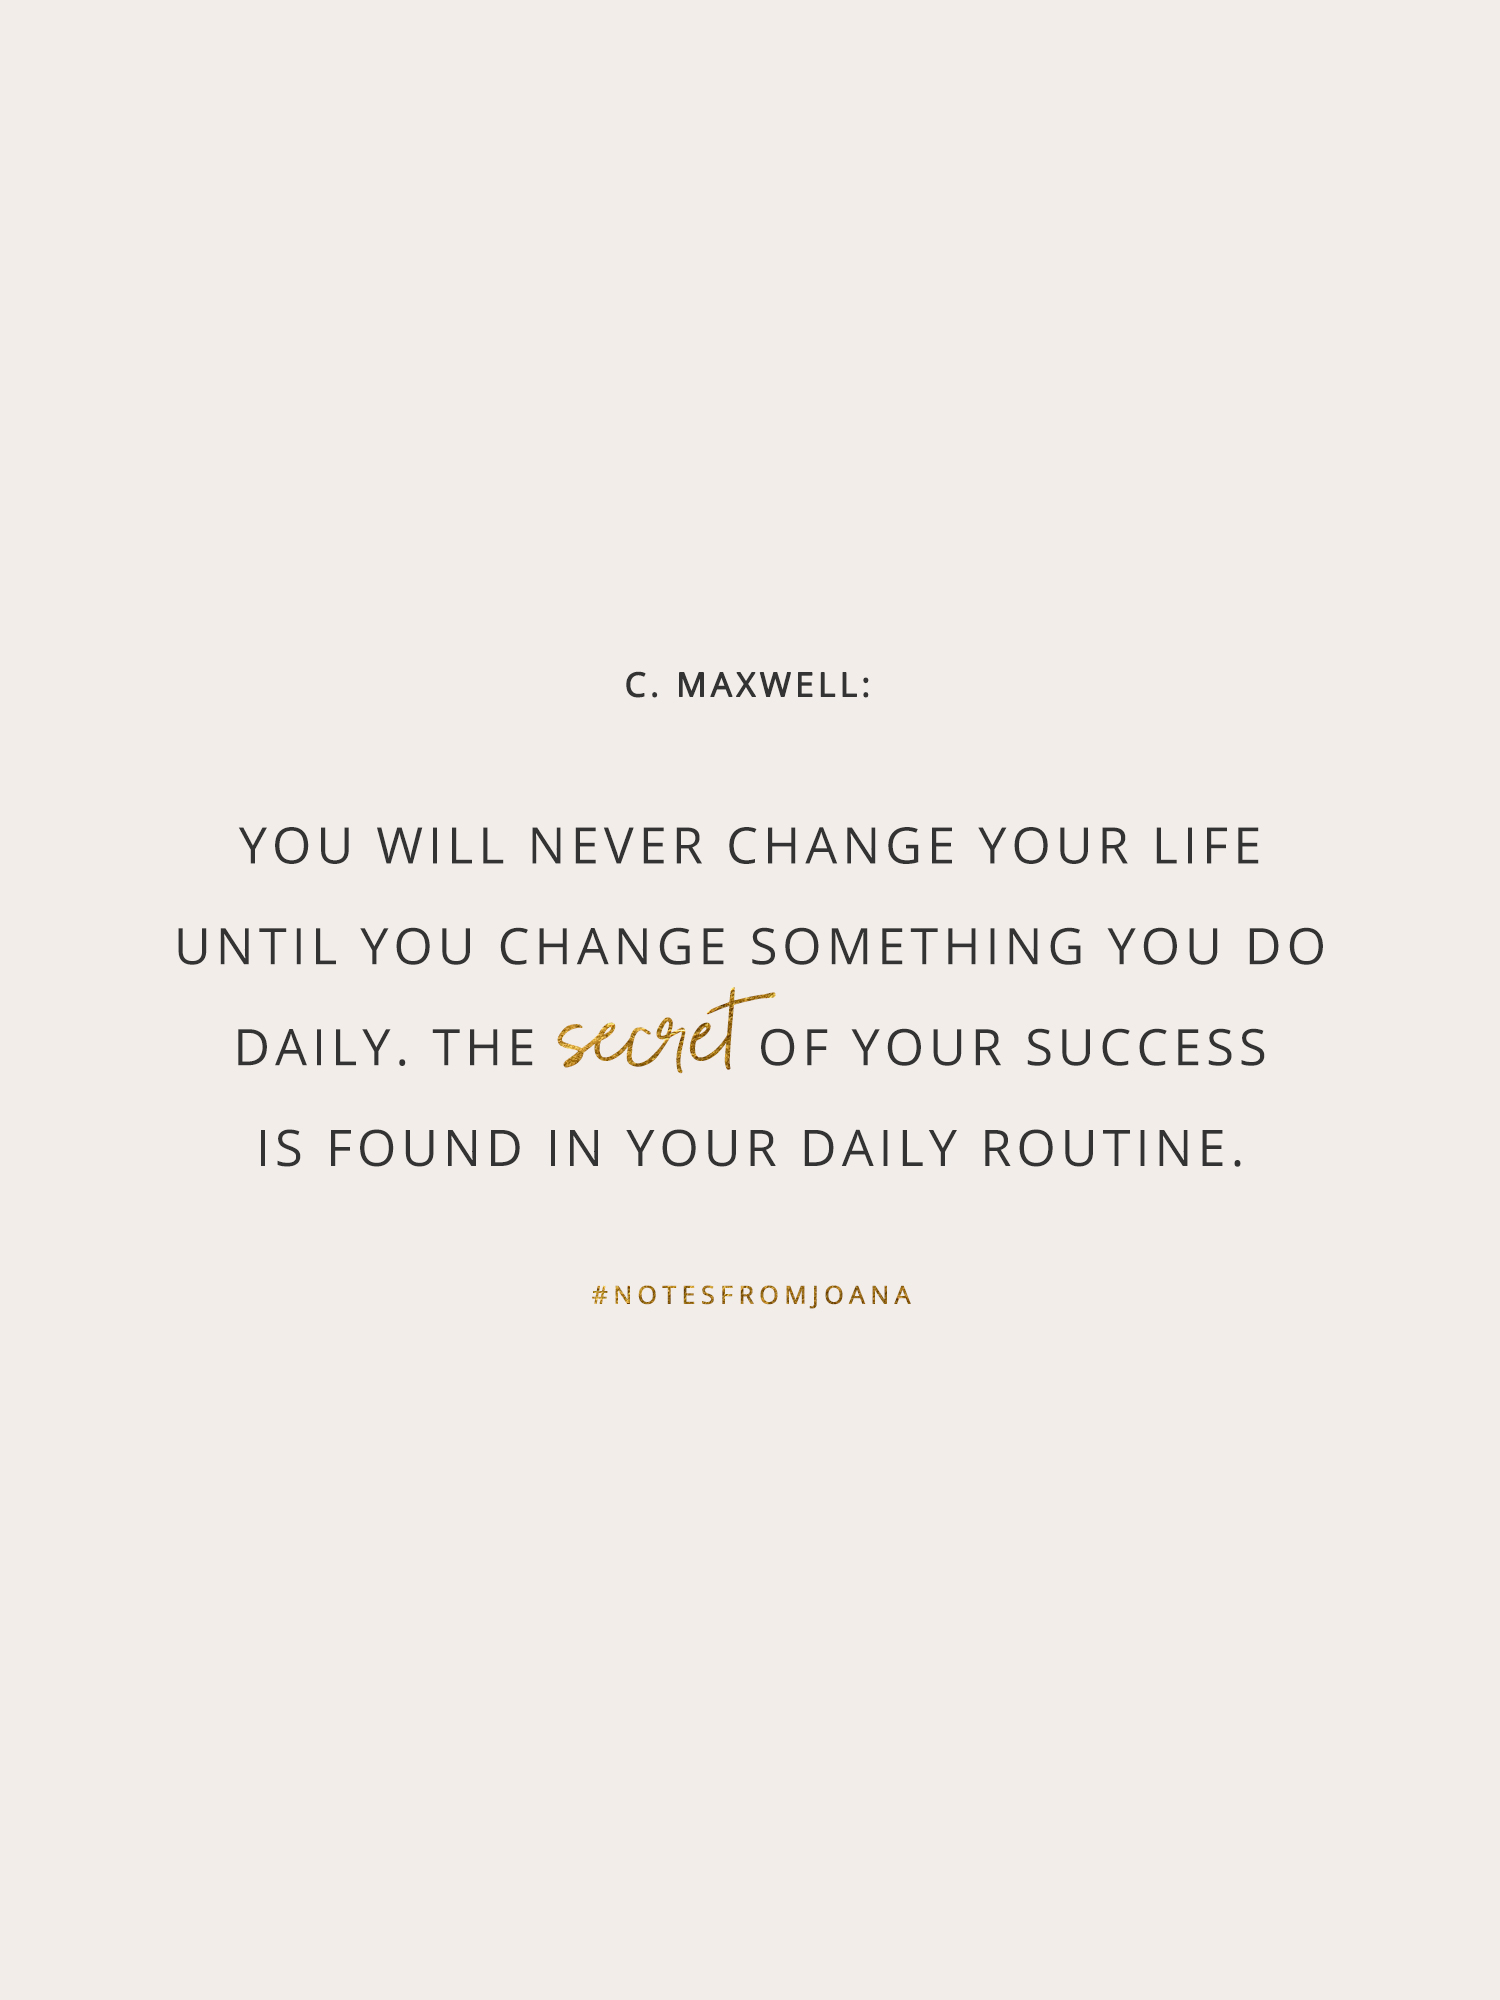 20 Inspirational Quotes To Help You Become Your Best Self. You will never change your life until you change something you do daily. The secret of your success is found in your daily routine. JOHN C. MAXWELL // Notes from Joana